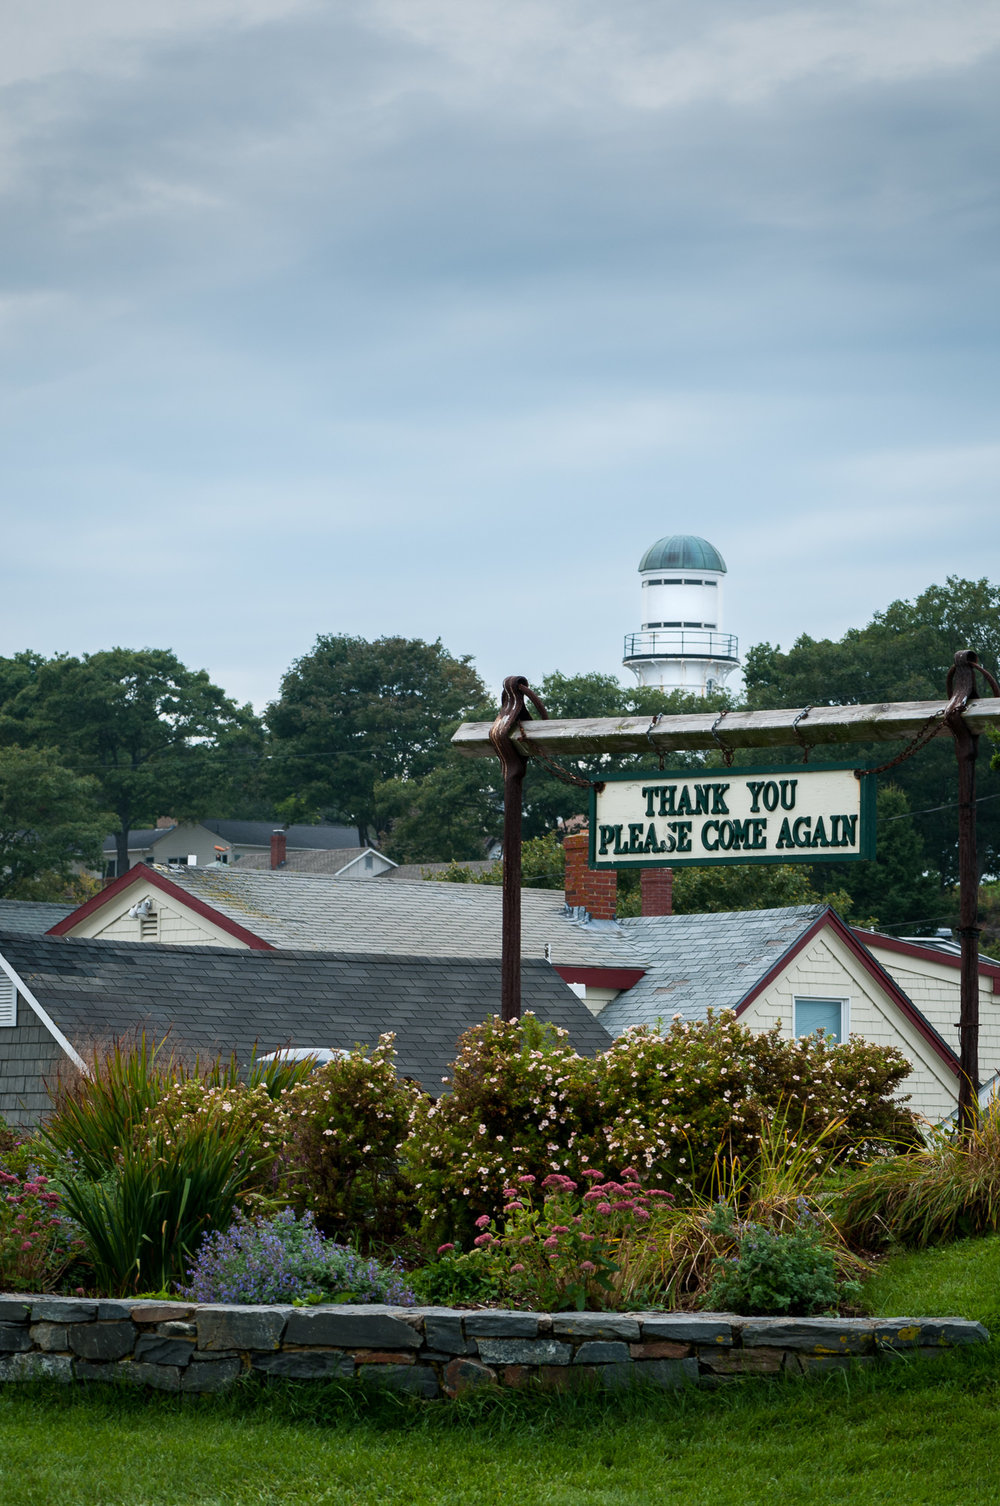 The Western Tower of Cape Elizabeth Light (Two Lights), in Maine, seen from the grounds of a restaurant